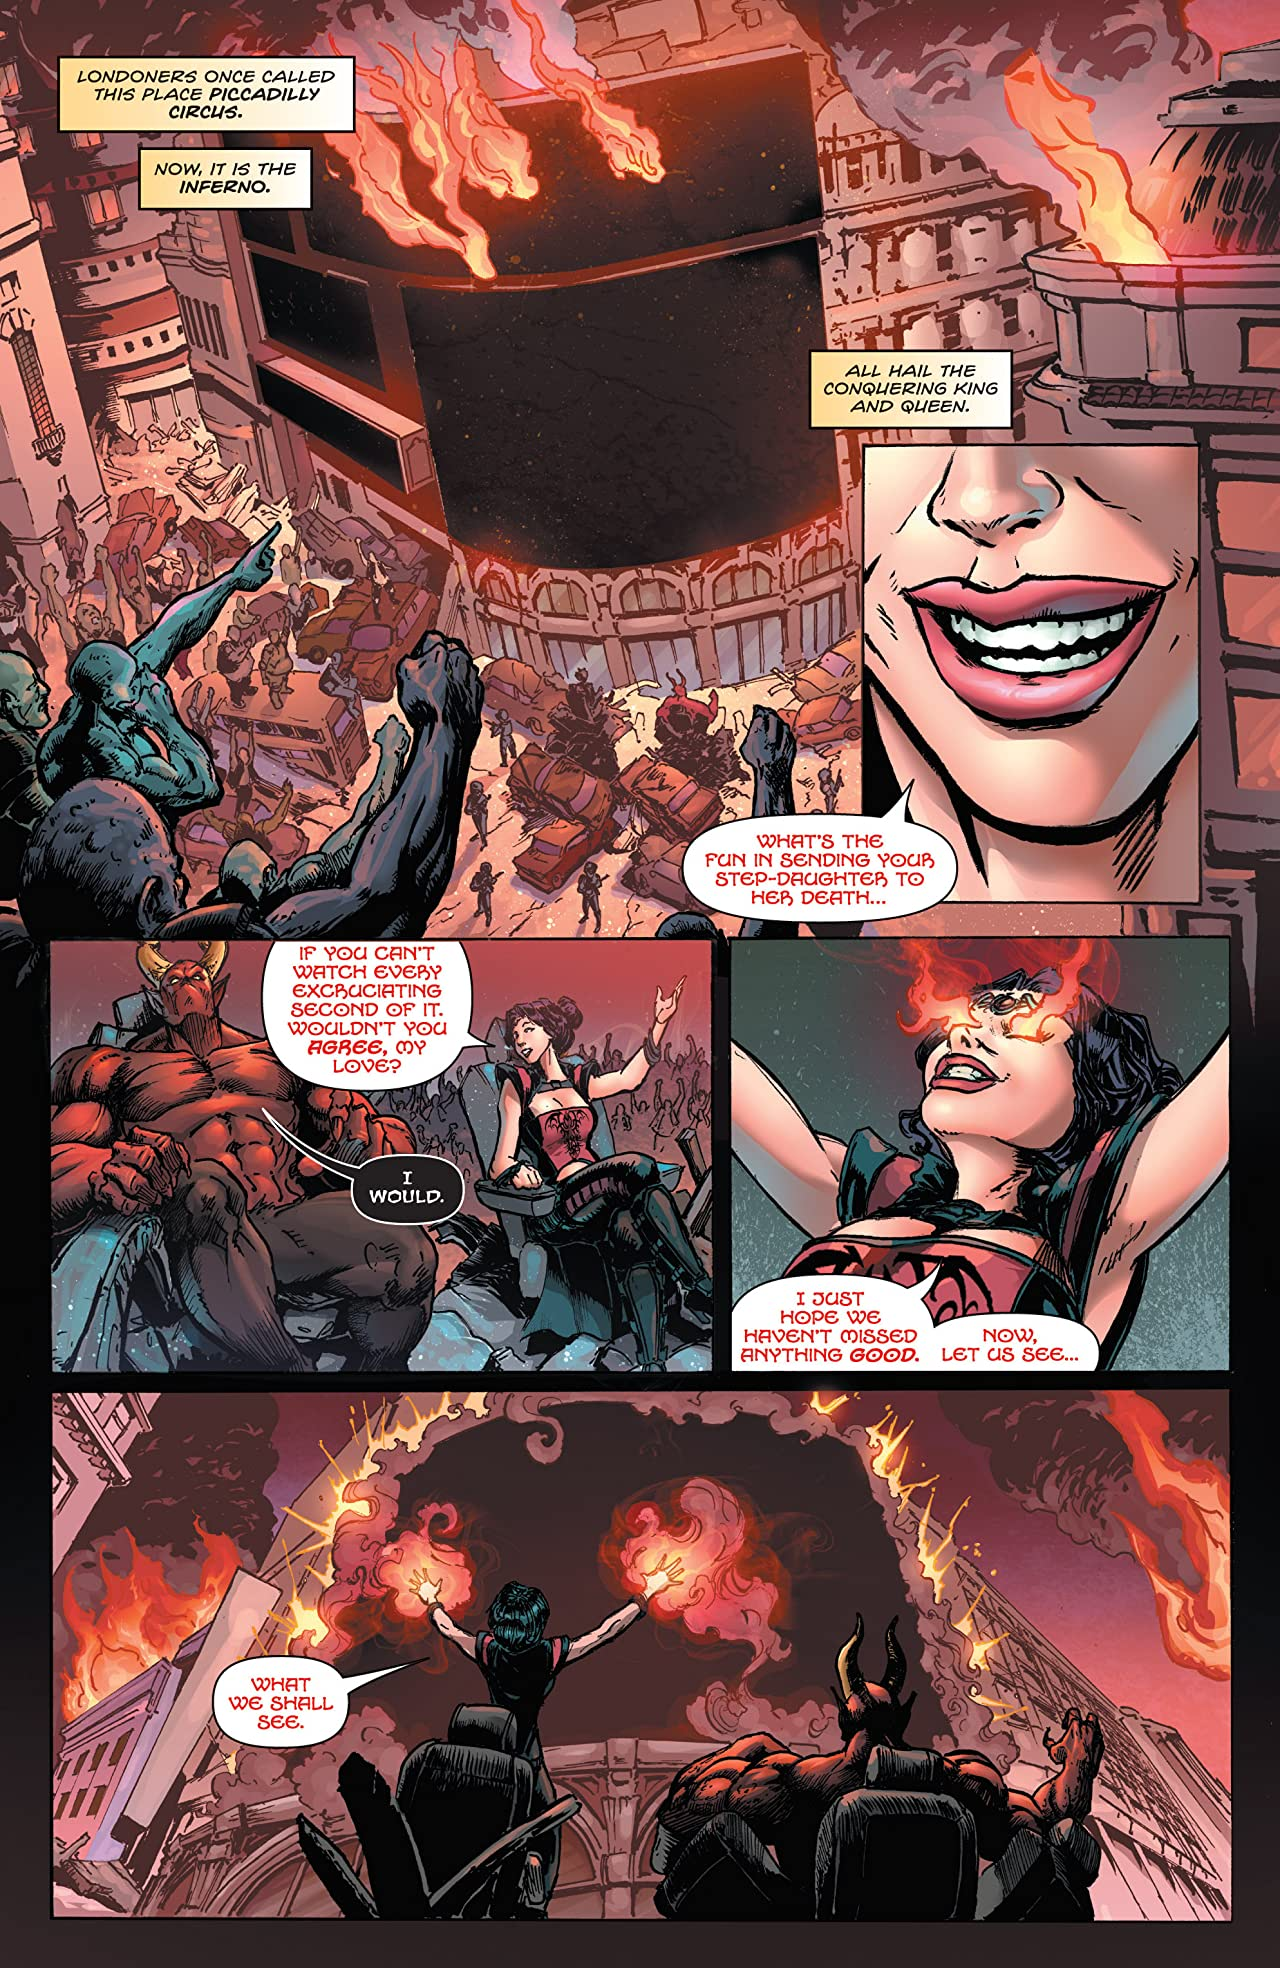 Inferno Rings of Hell #2 (of 3)